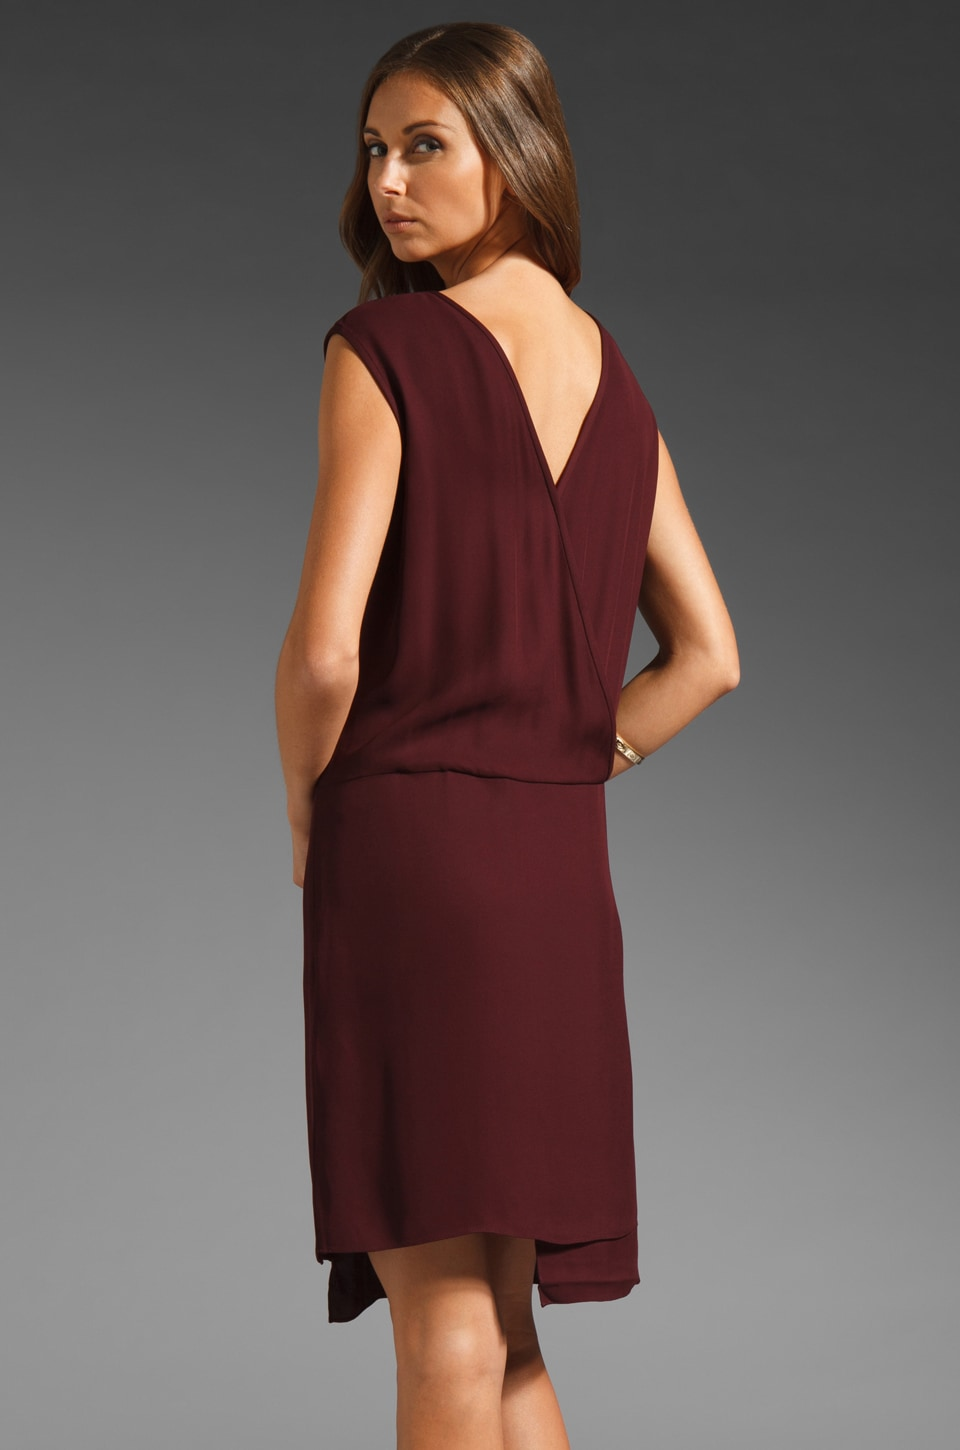 Tibi Drapy Crepe Wrap Dress in Burgundy